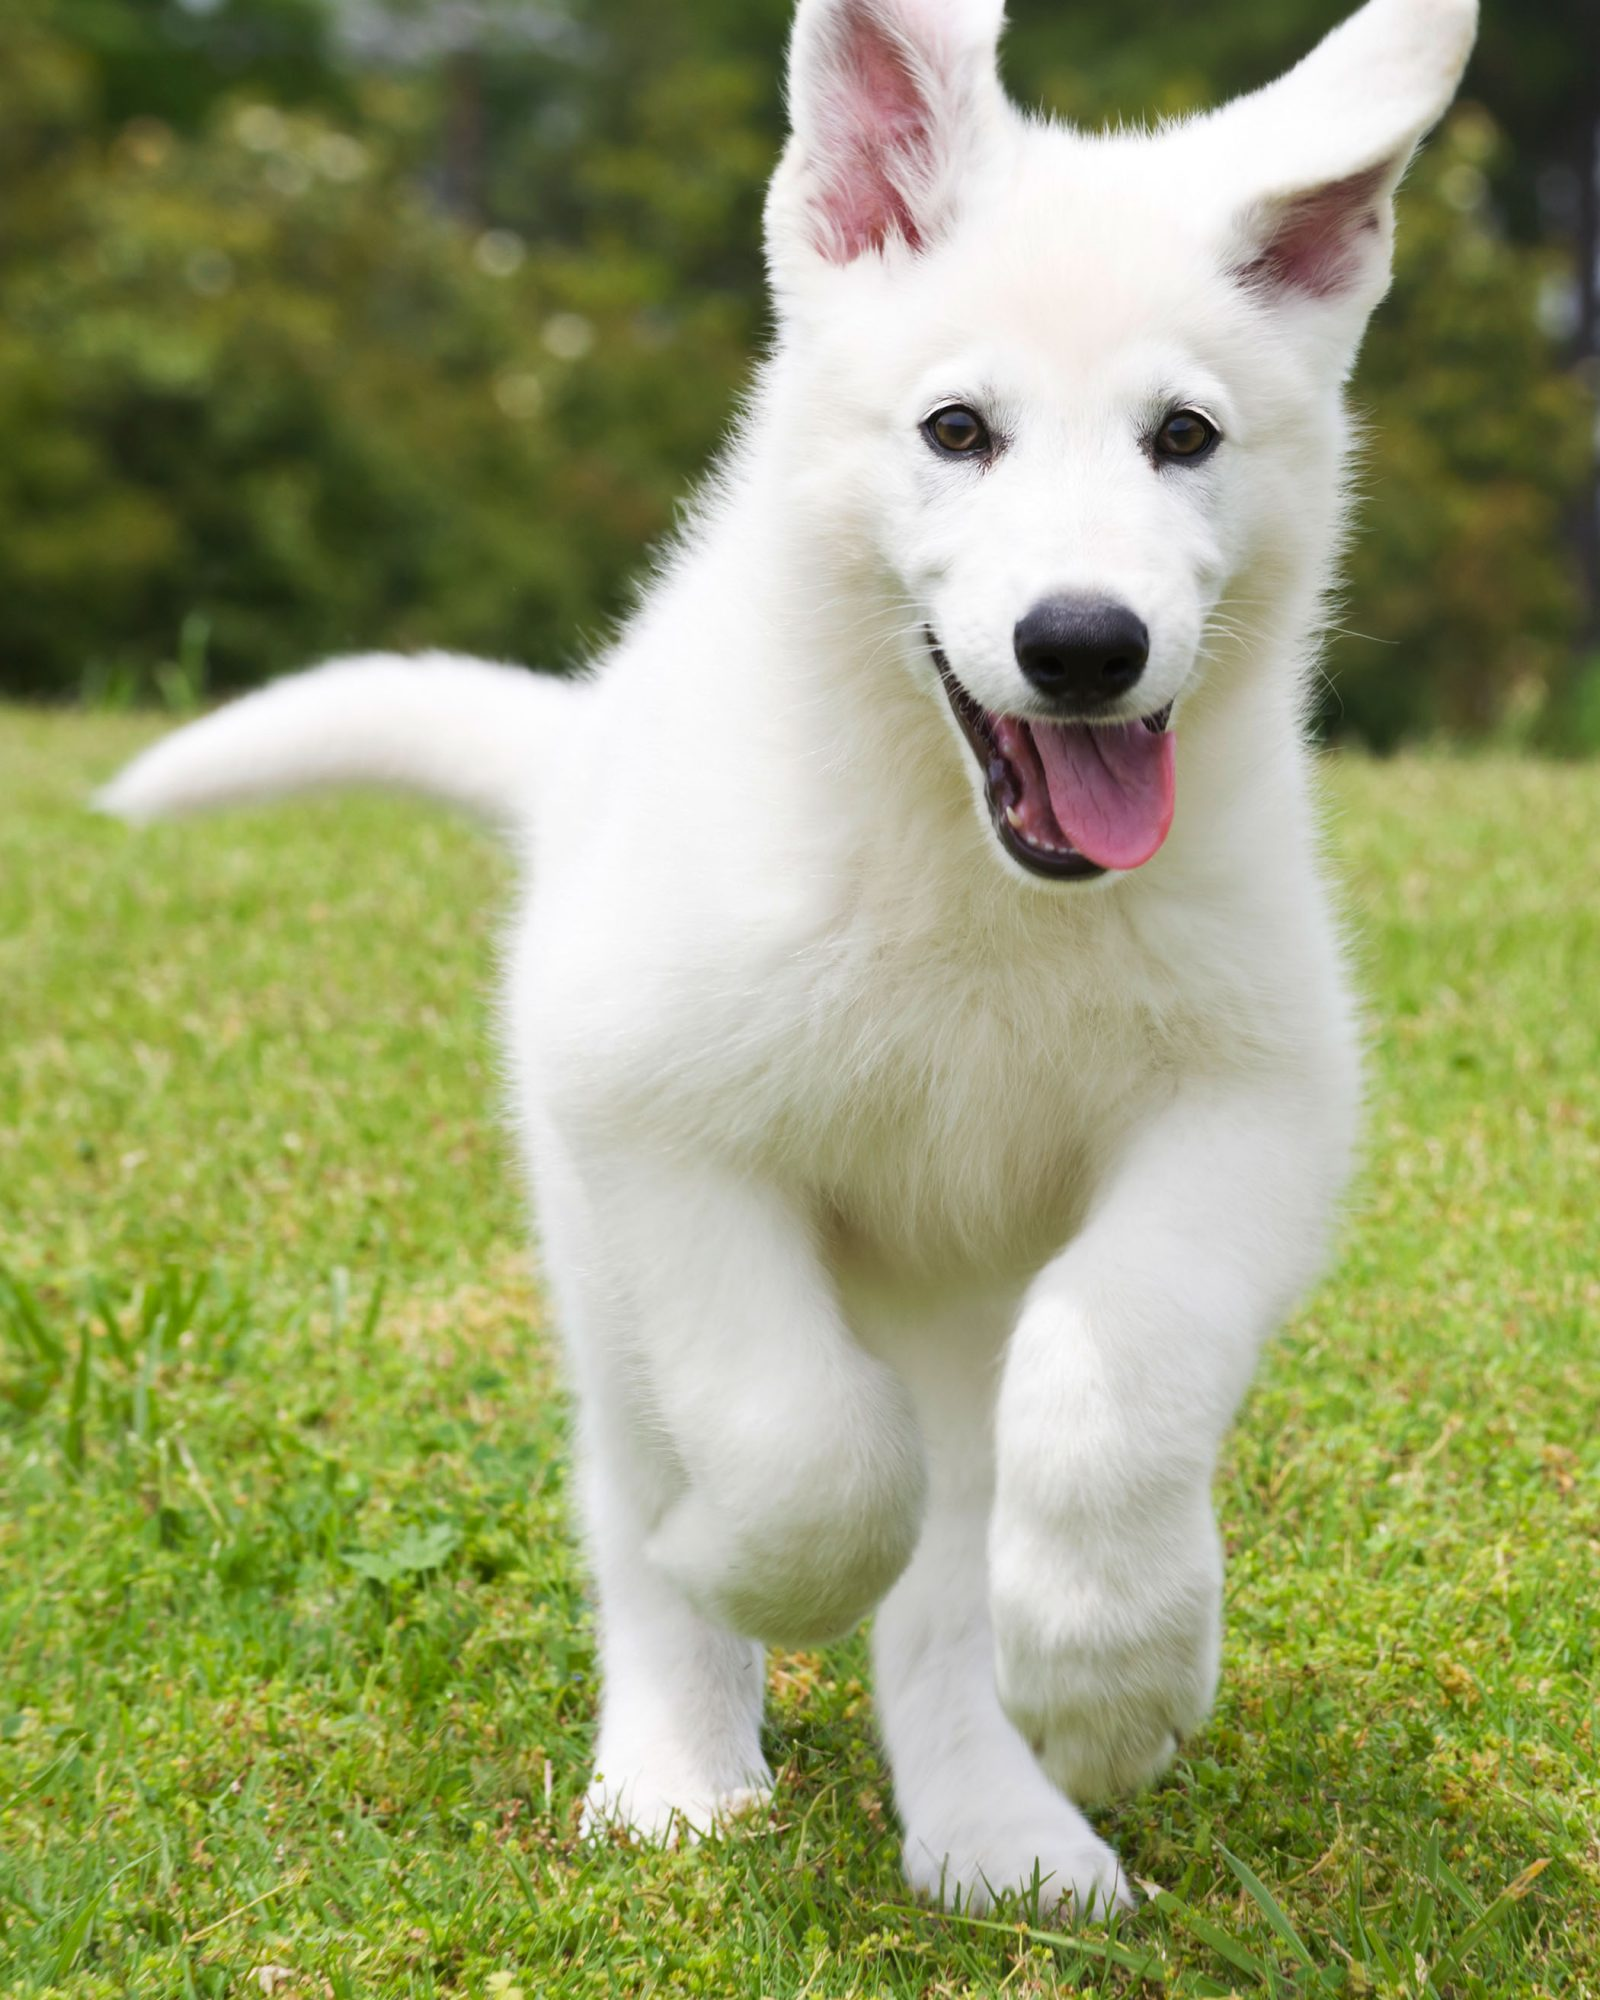 The Best 20 Dog Names for Your White Pup